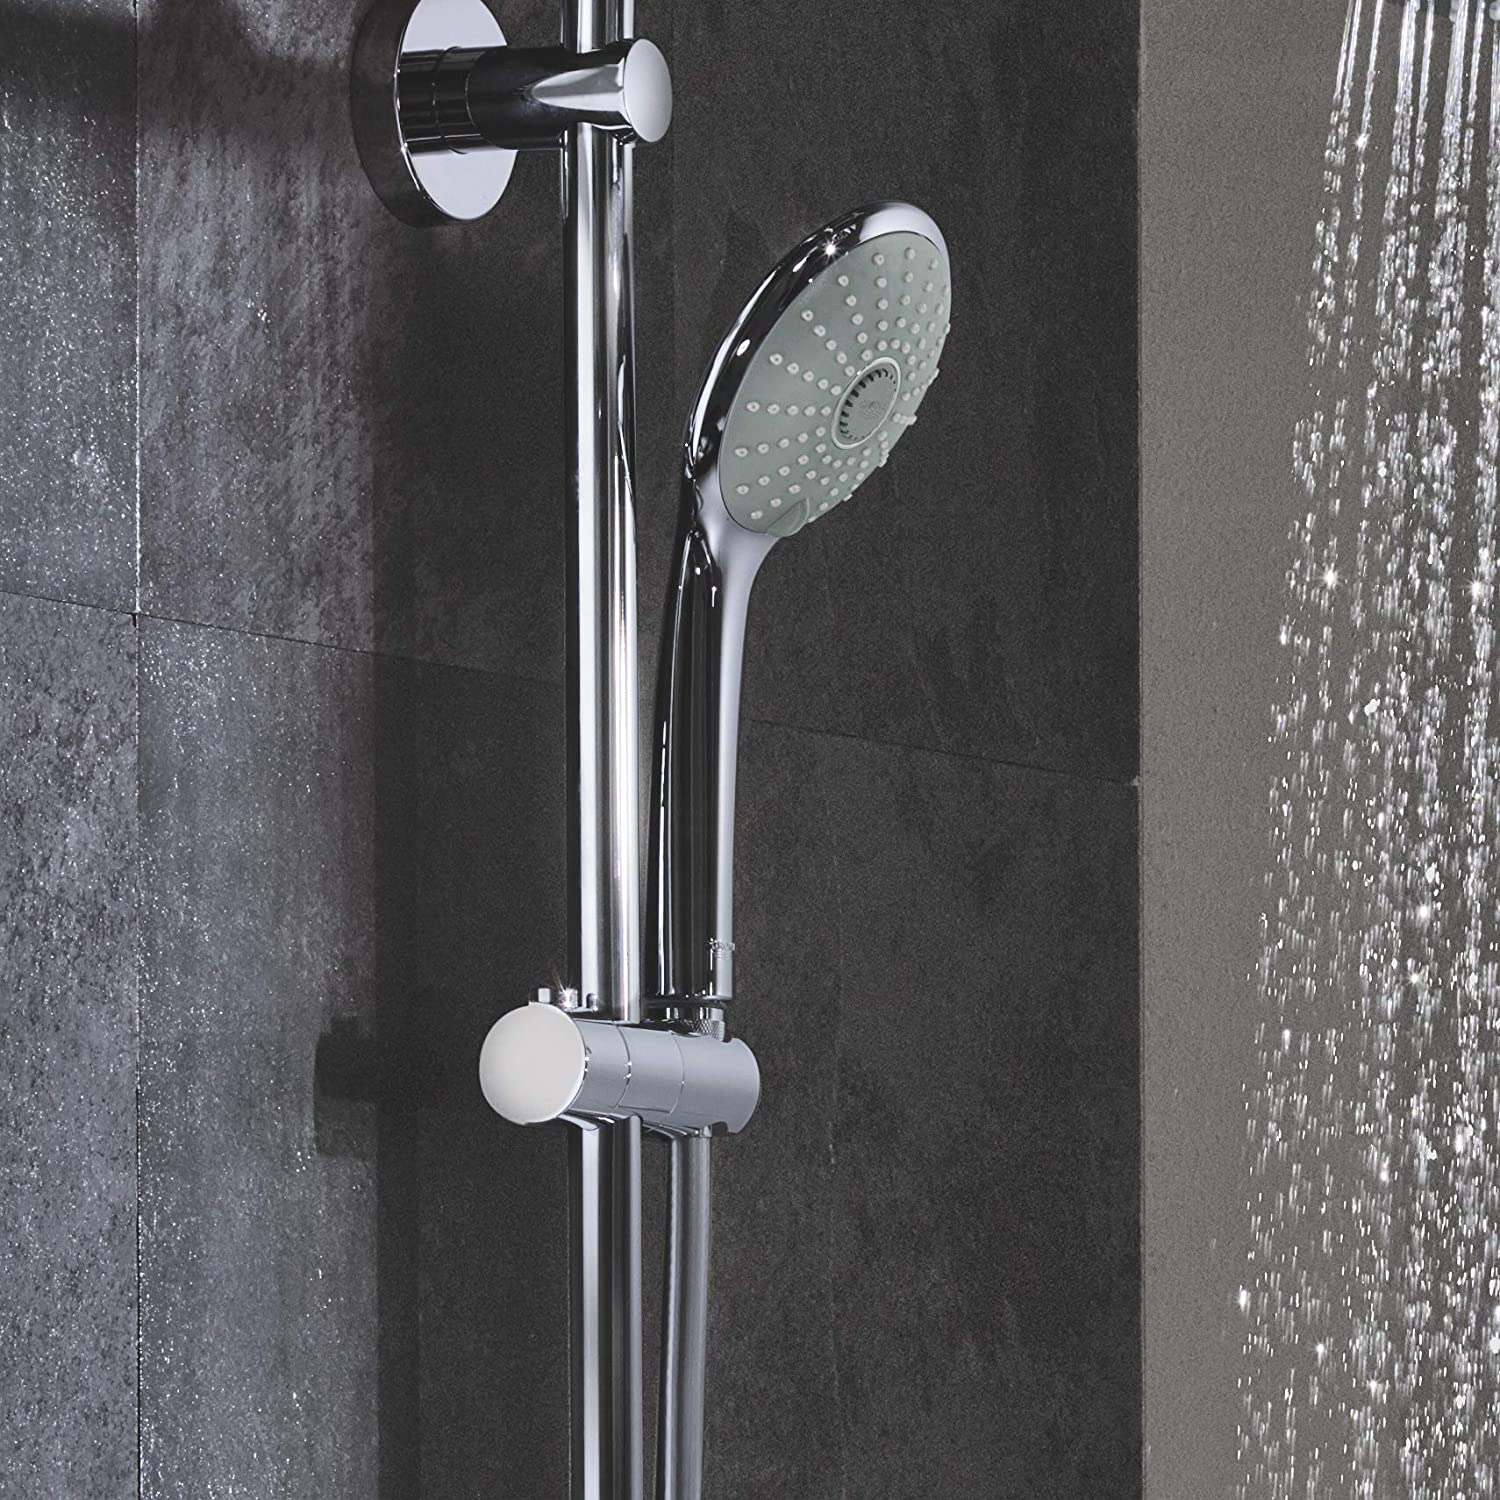 GROHE 26128001 Euphoria 2.5 Gpm Shower System with Thermostat for Wall Mount, Starlight Chrome - - Amazon.com